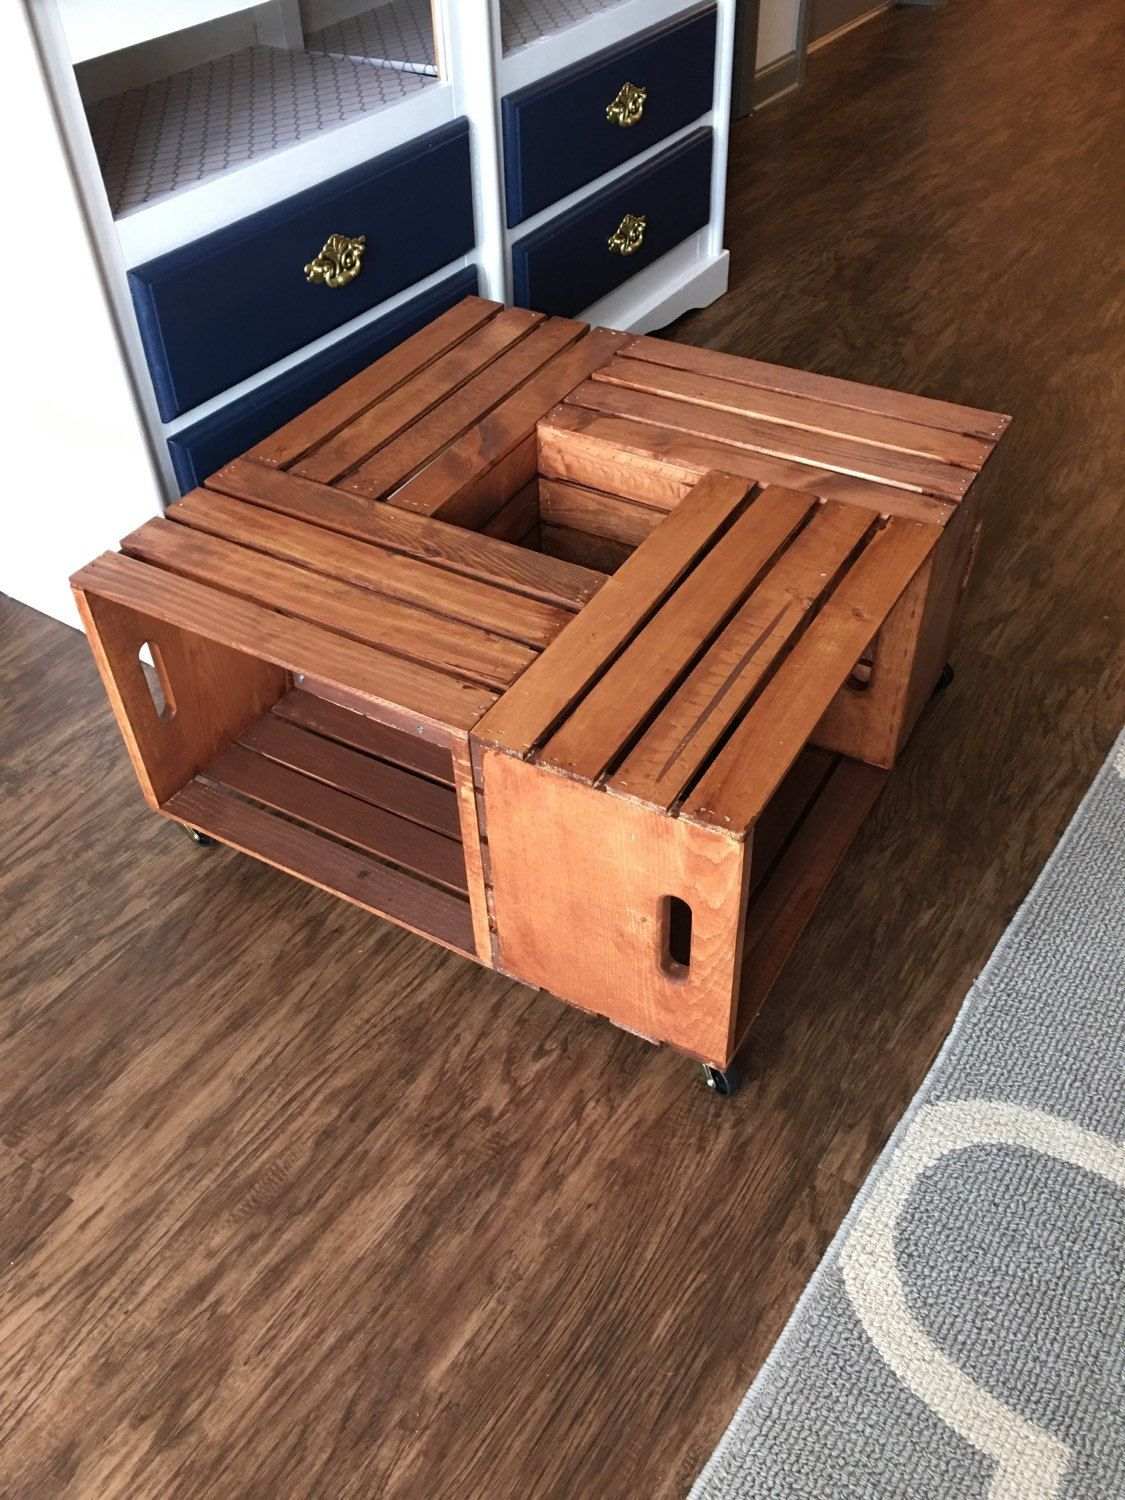 Wood crate coffee table by keriscraftsnthings on etsy wohnung wood crate coffee table by keriscraftsnthings on etsy geotapseo Choice Image